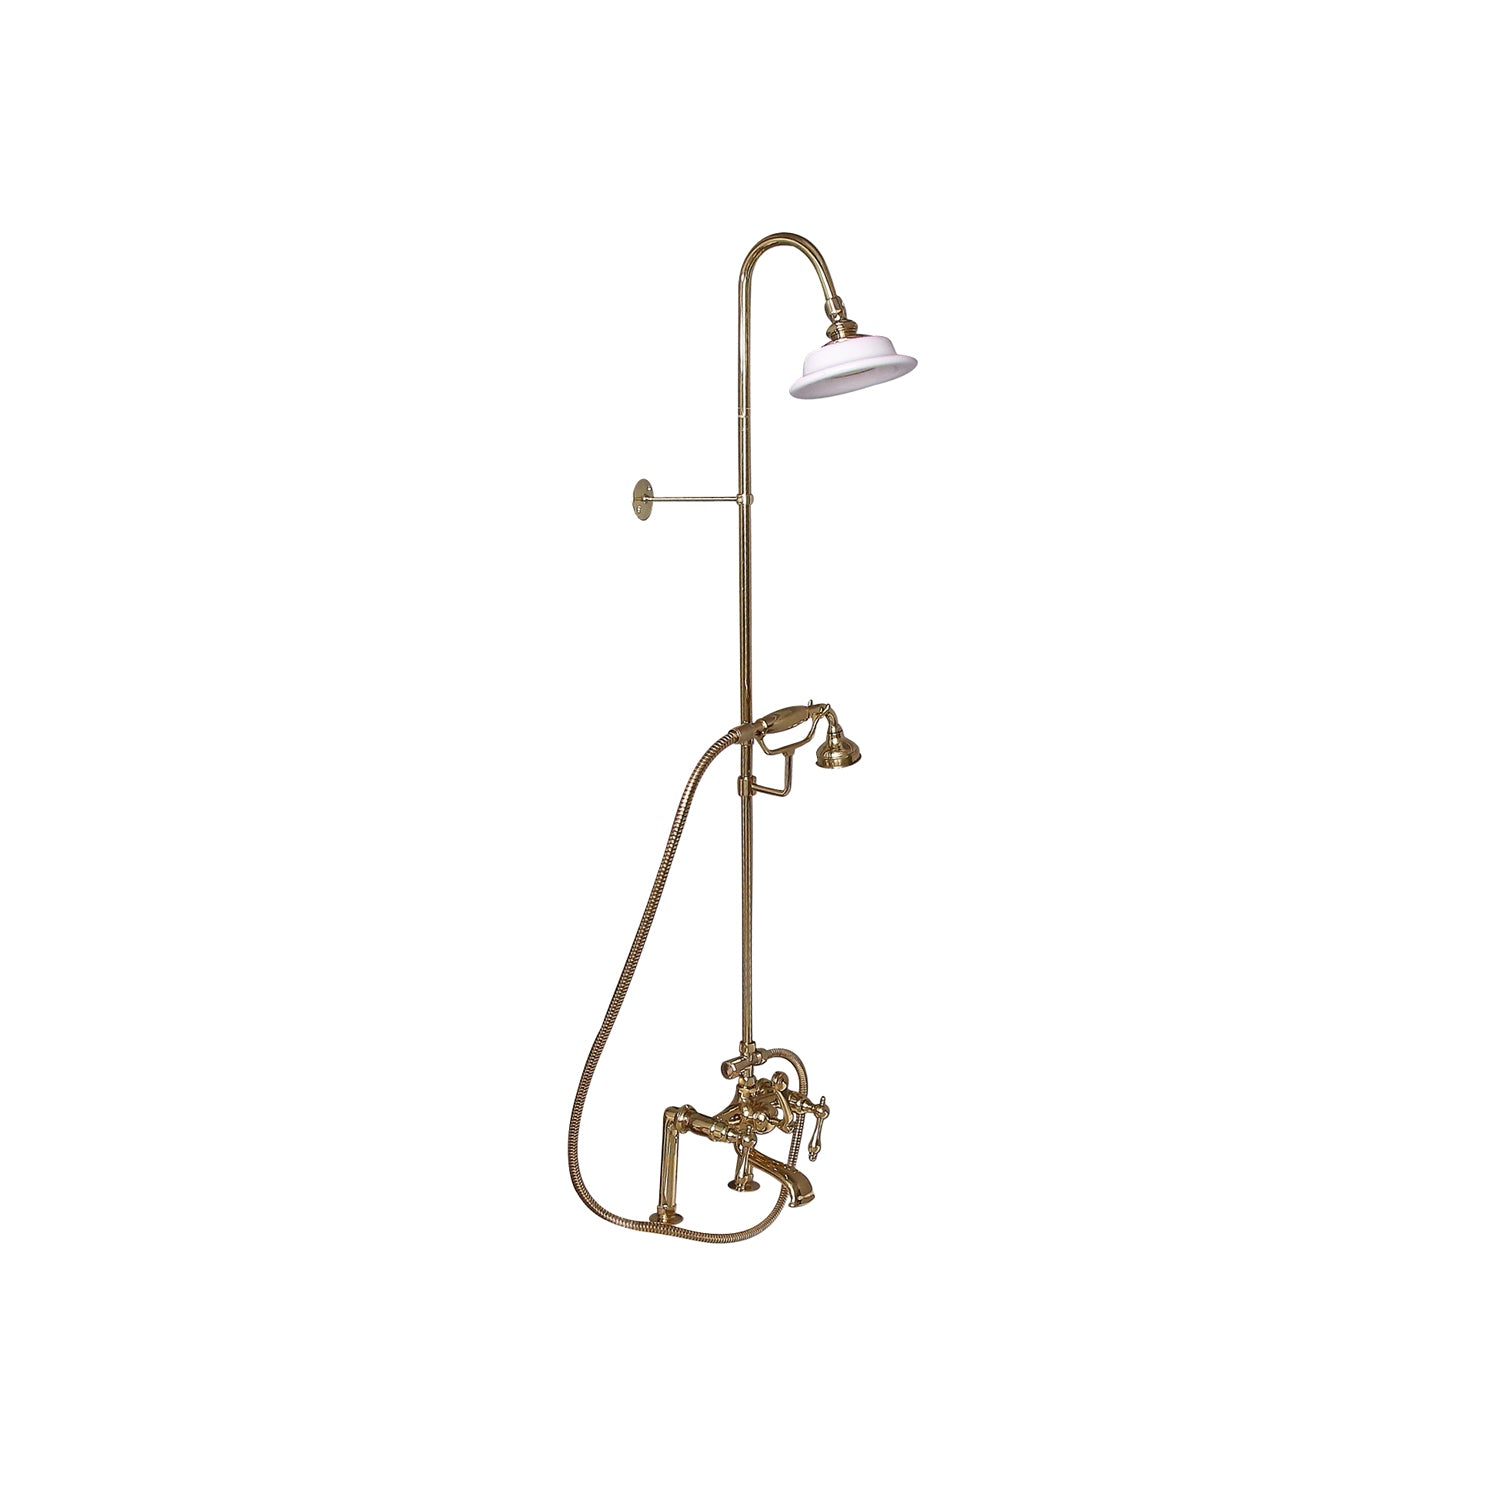 Barclay Products Clawfoot Tub Shower Converto Unit With Handshower